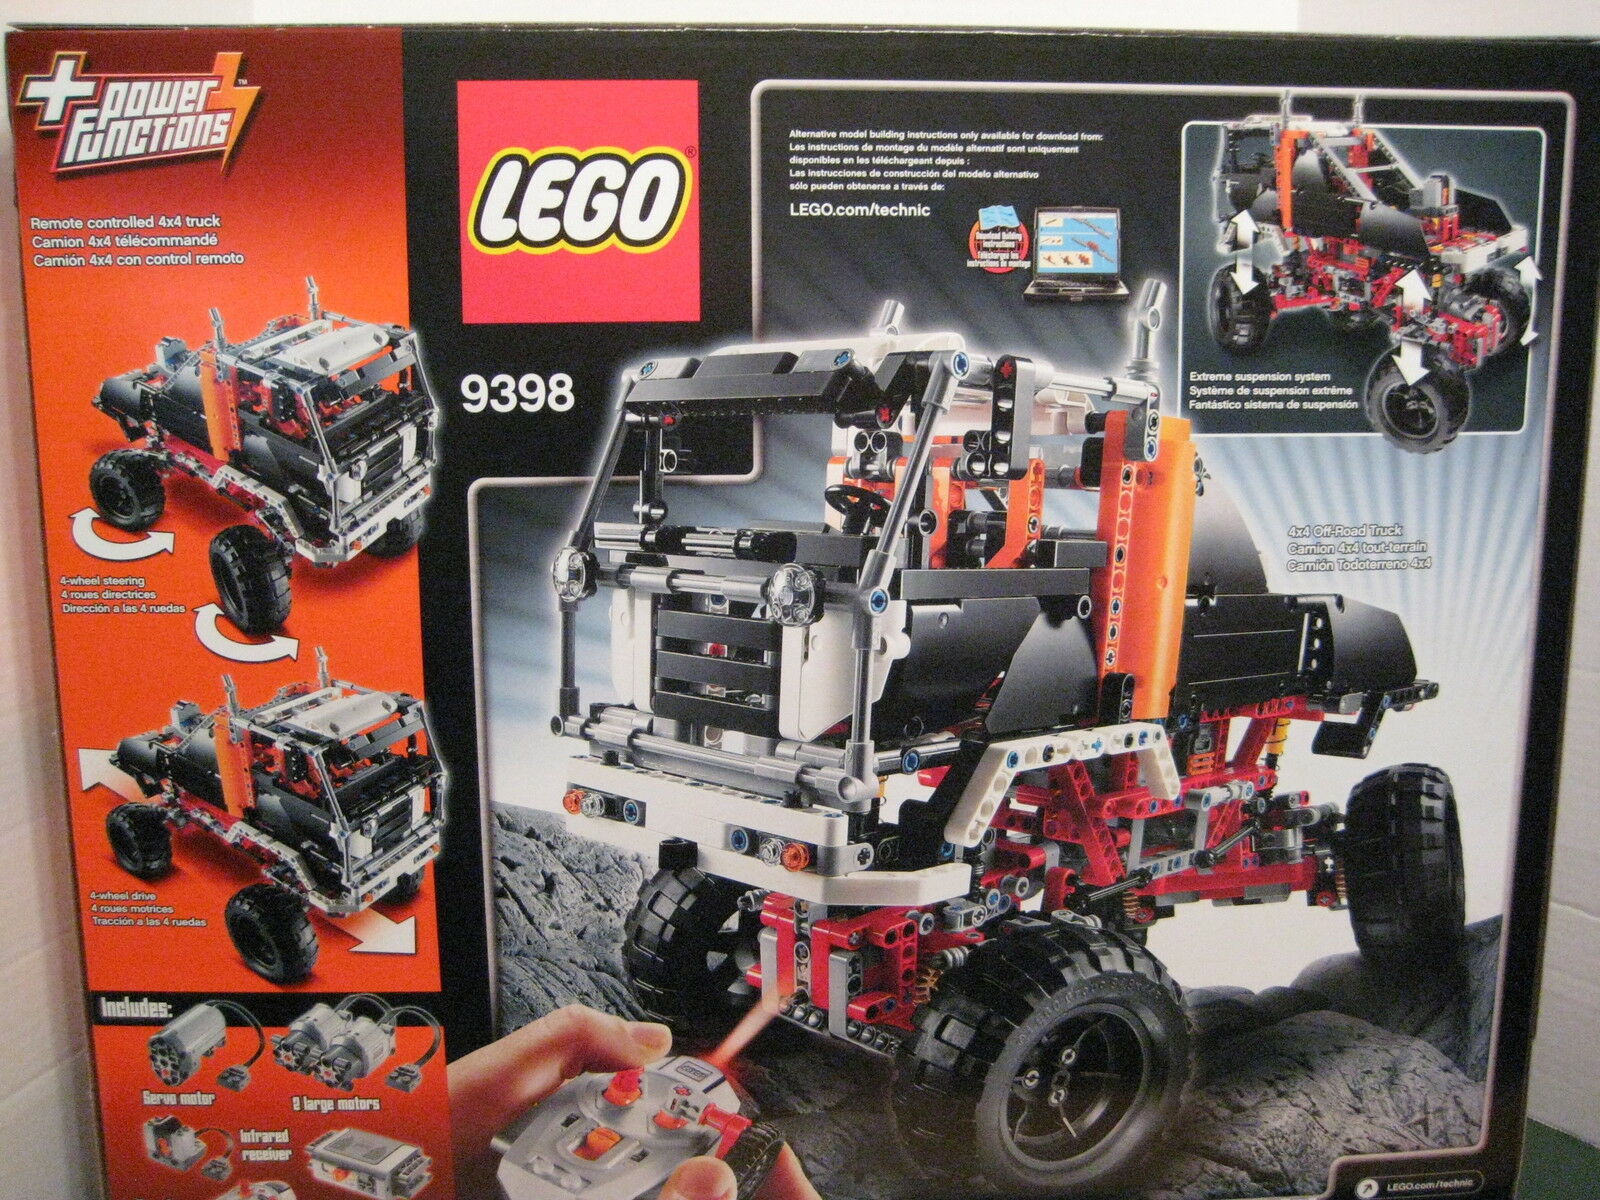 Lego Technic     9398 4 X 4 Crawler Power Stearing Remote Control 936bea